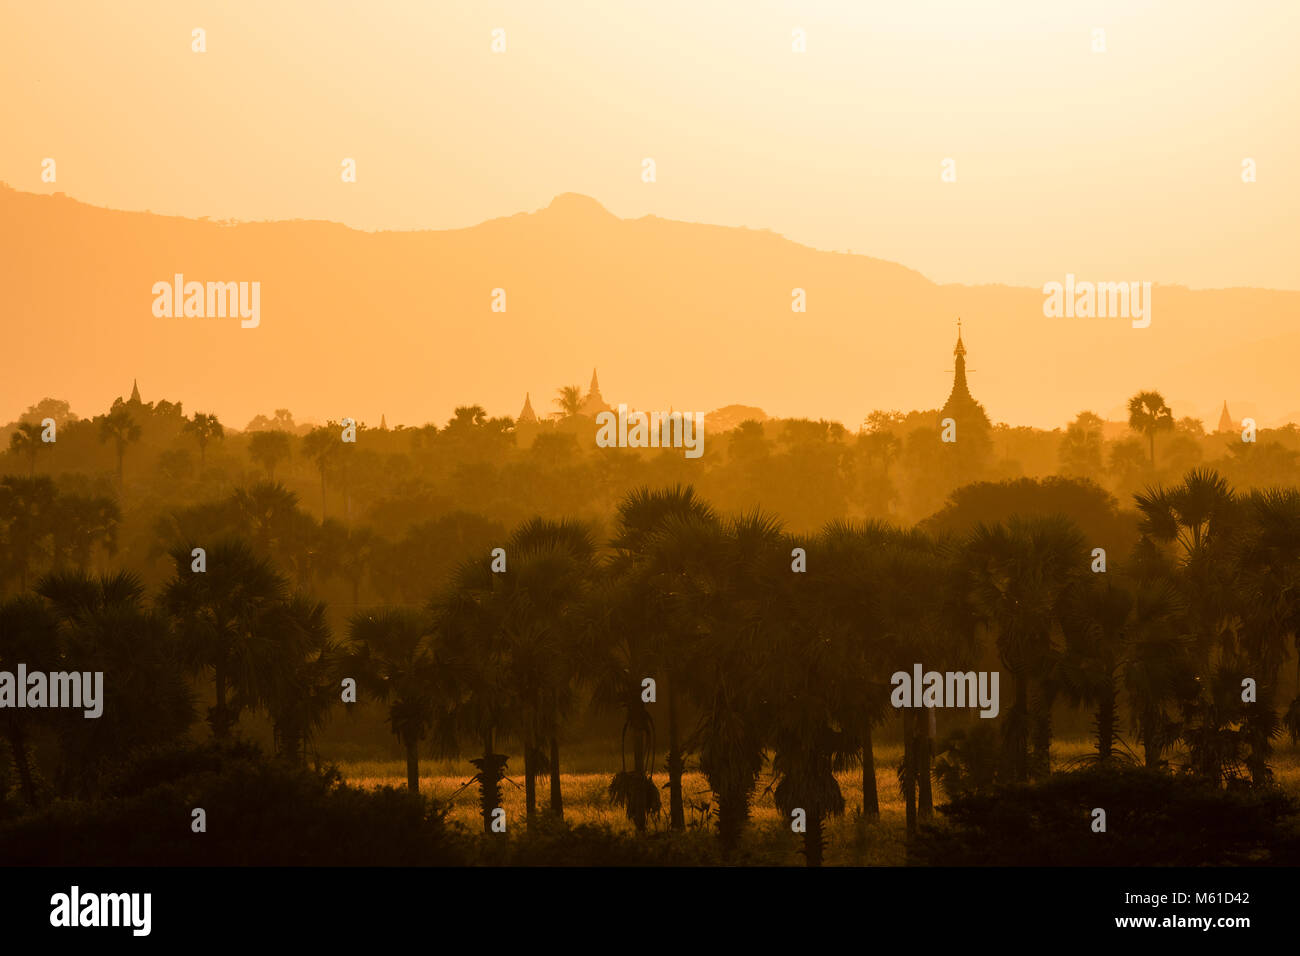 Landscape with temples and pagodas in the magic evening light in Bagan, Myanmar Stock Photo